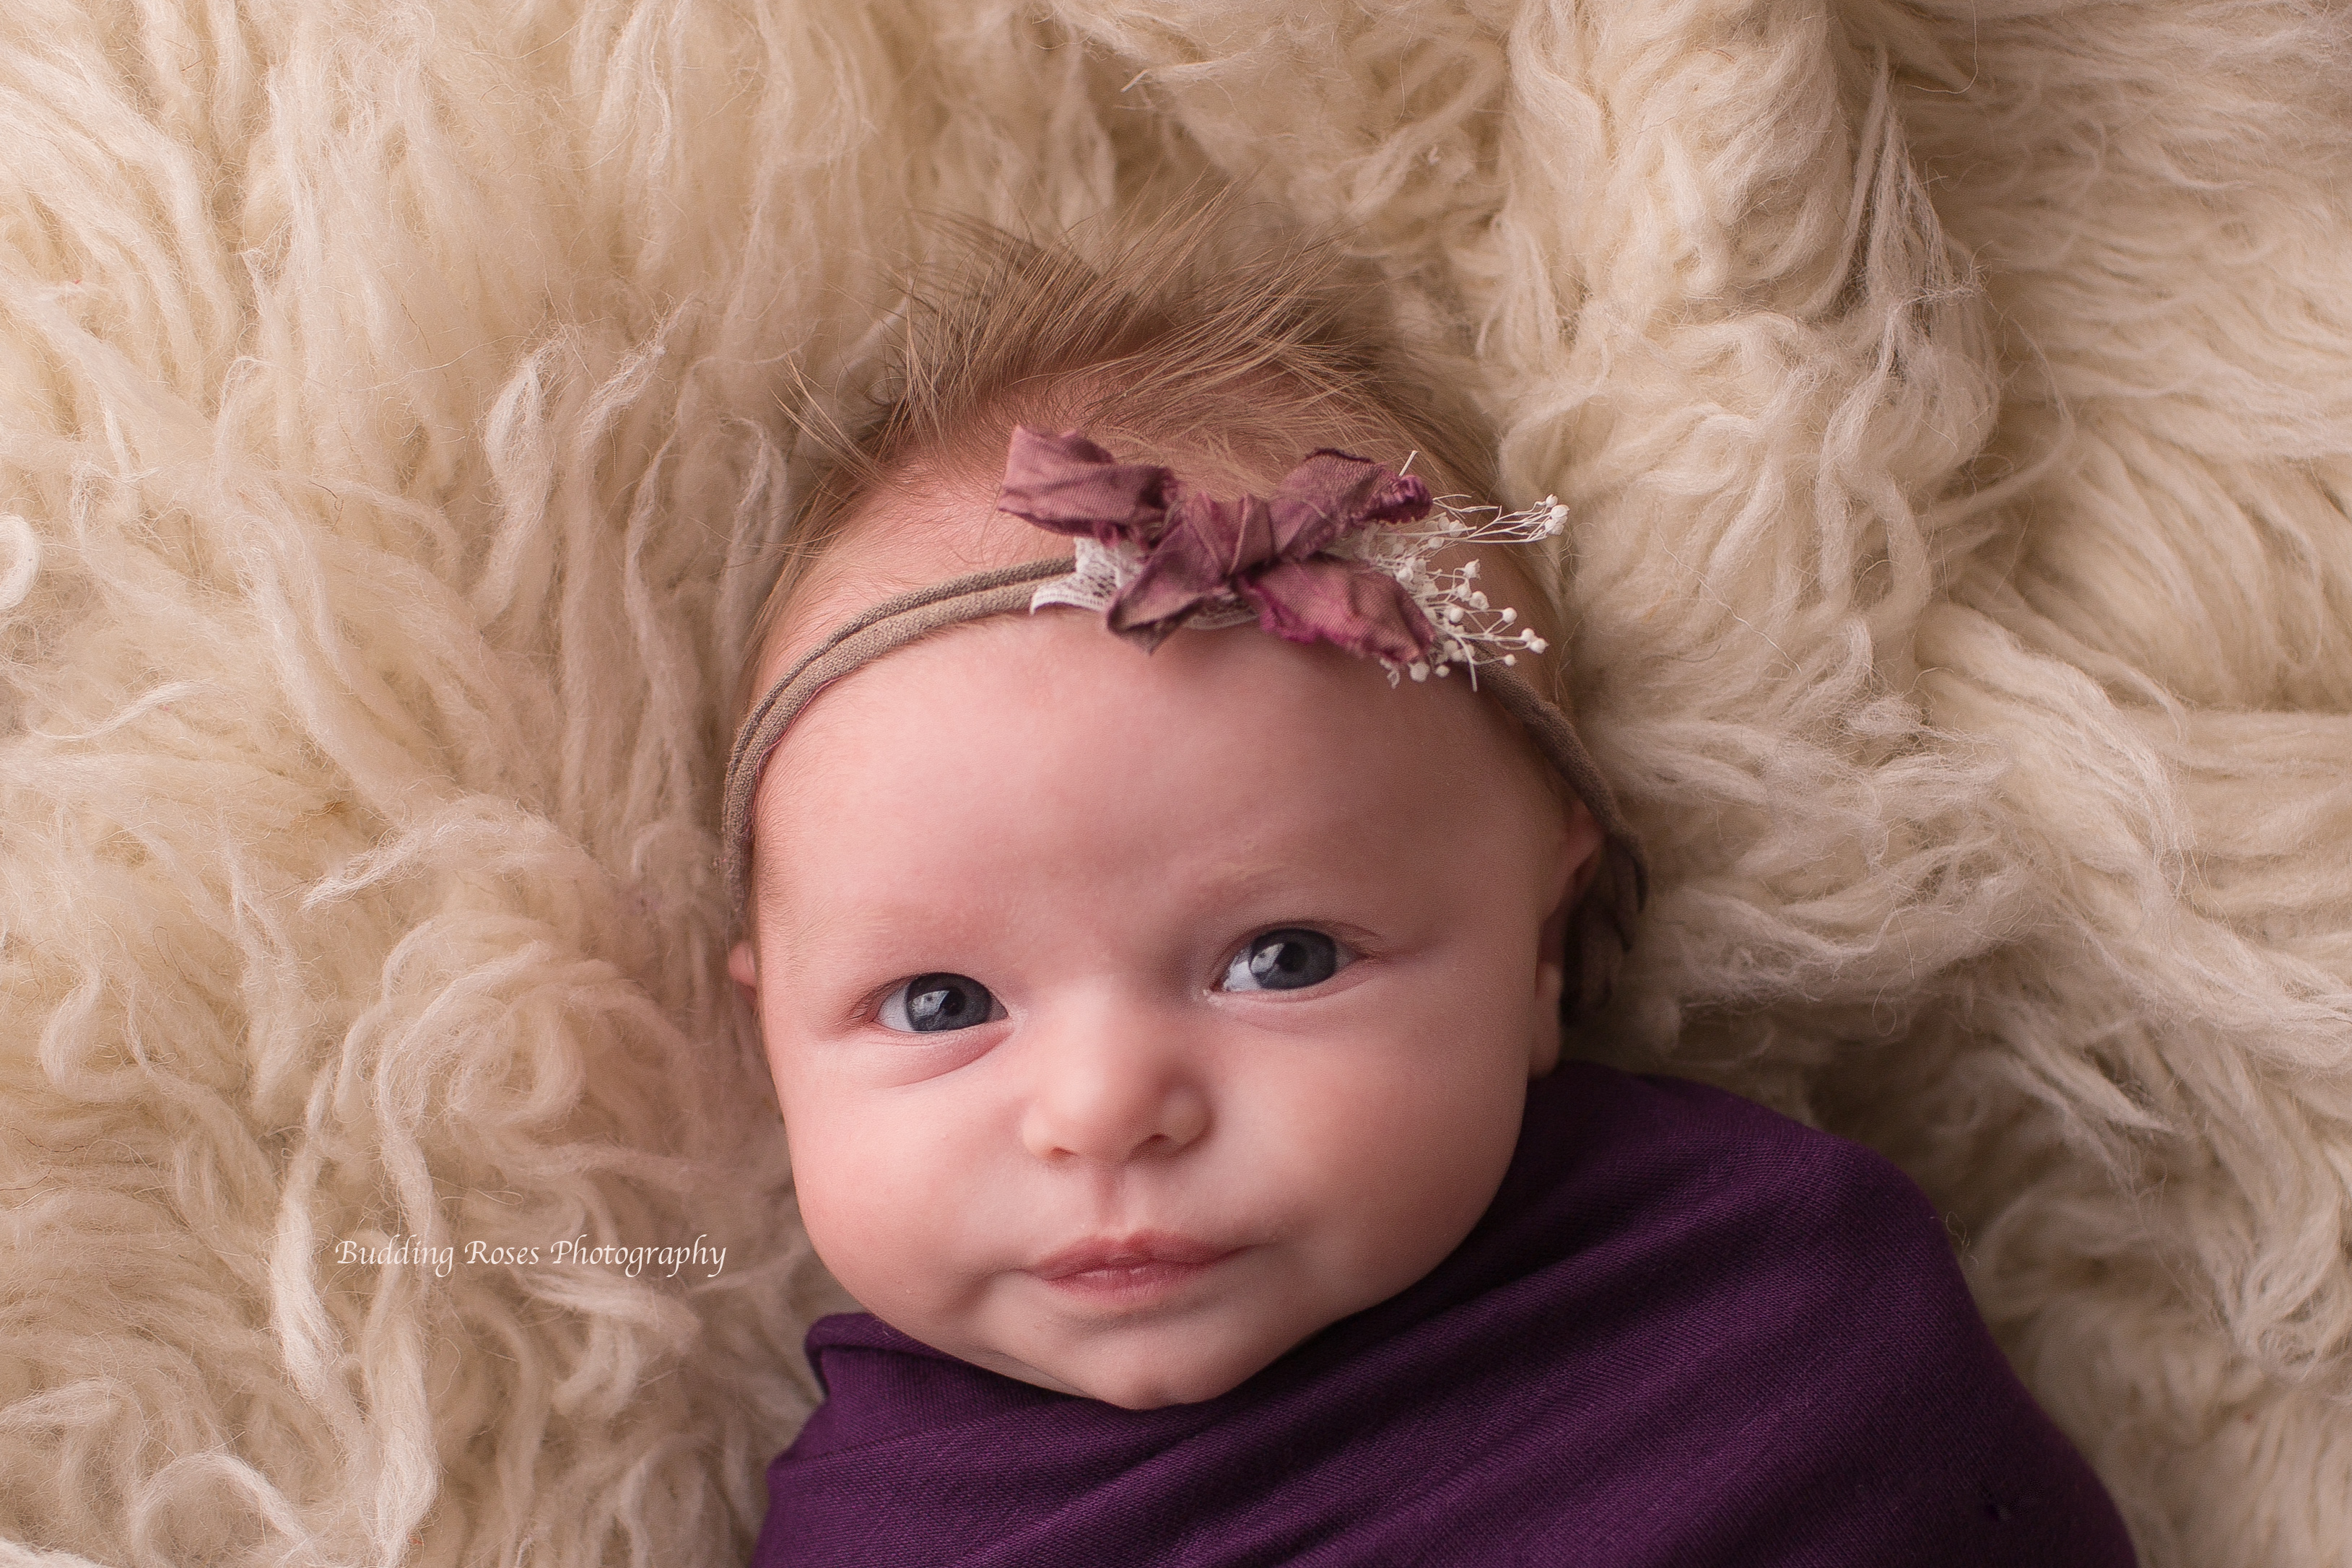 new jersey photographer, newborn baby pictures, newborn picture session, baby girl photos, images of newborns, hunterdon county nj photographer, baby girl picture session